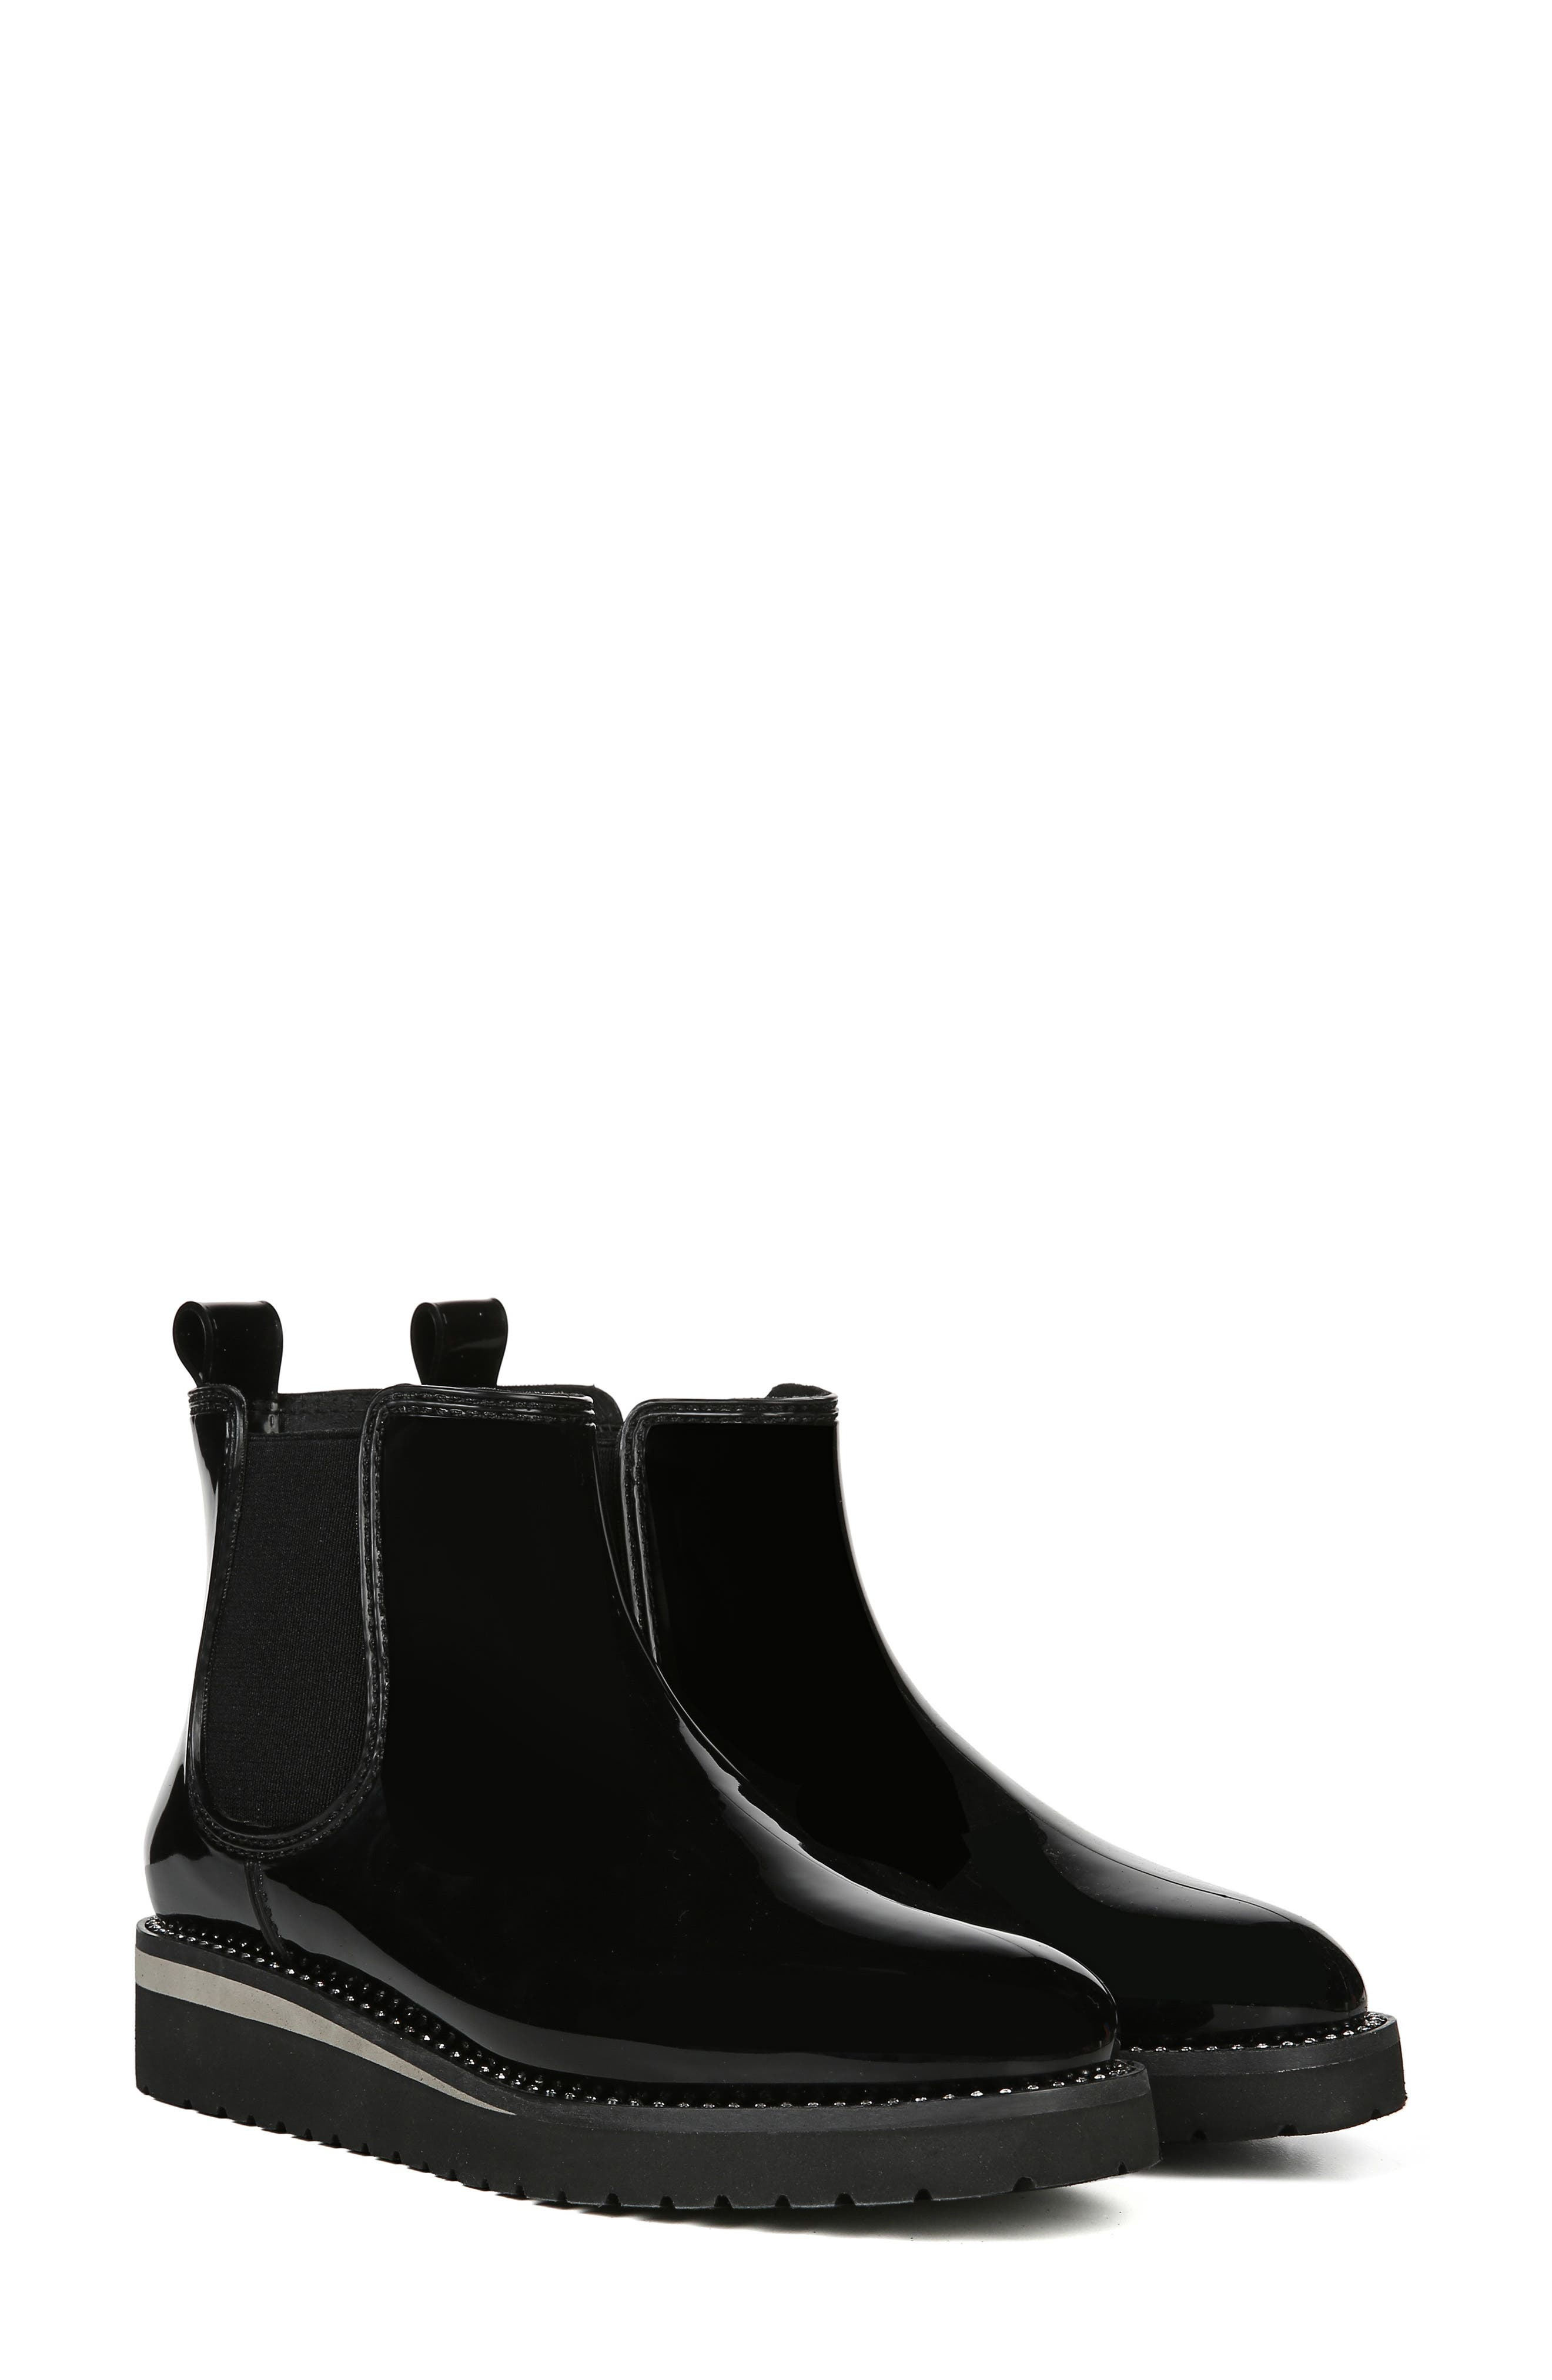 Luna Waterproof Chelsea Boot,                             Alternate thumbnail 9, color,                             BLACK